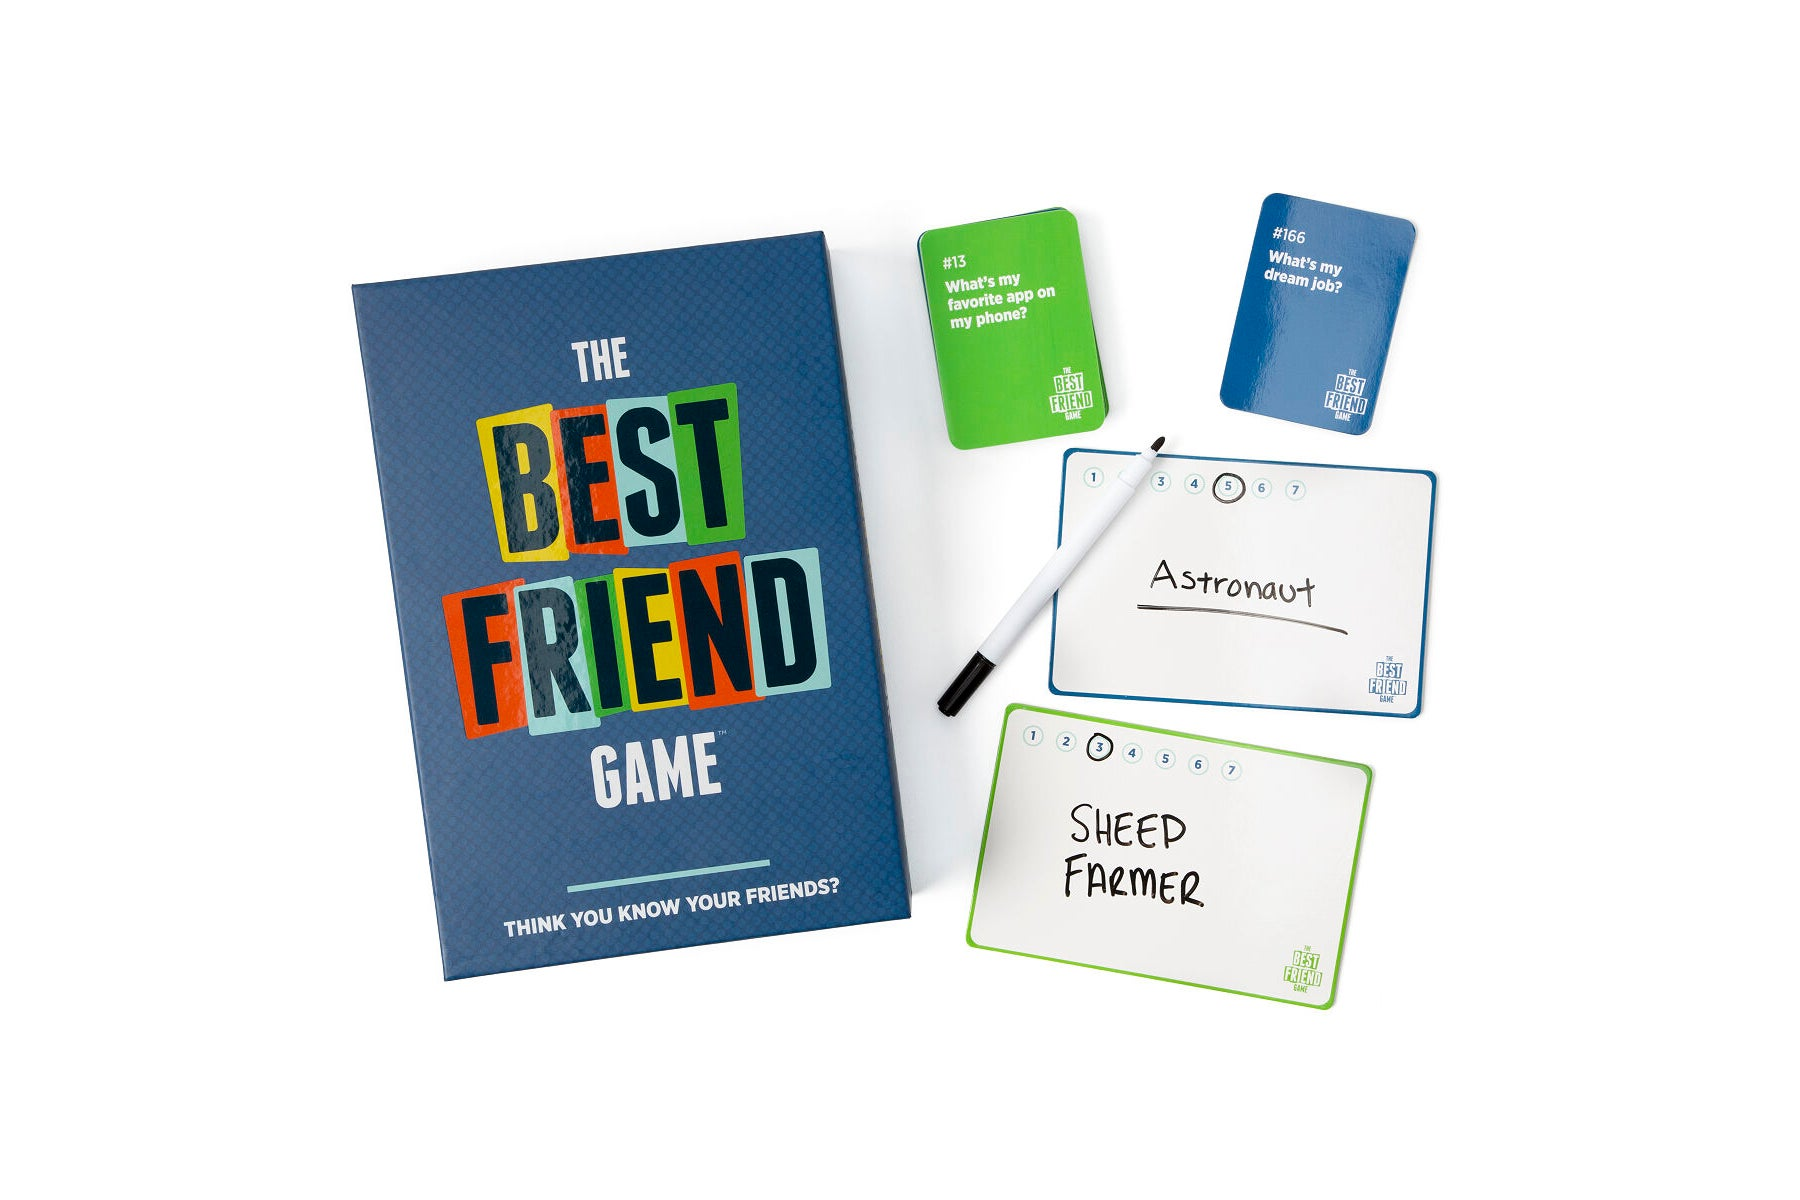 The Best Friend Game, shown with cards and drawing boards,